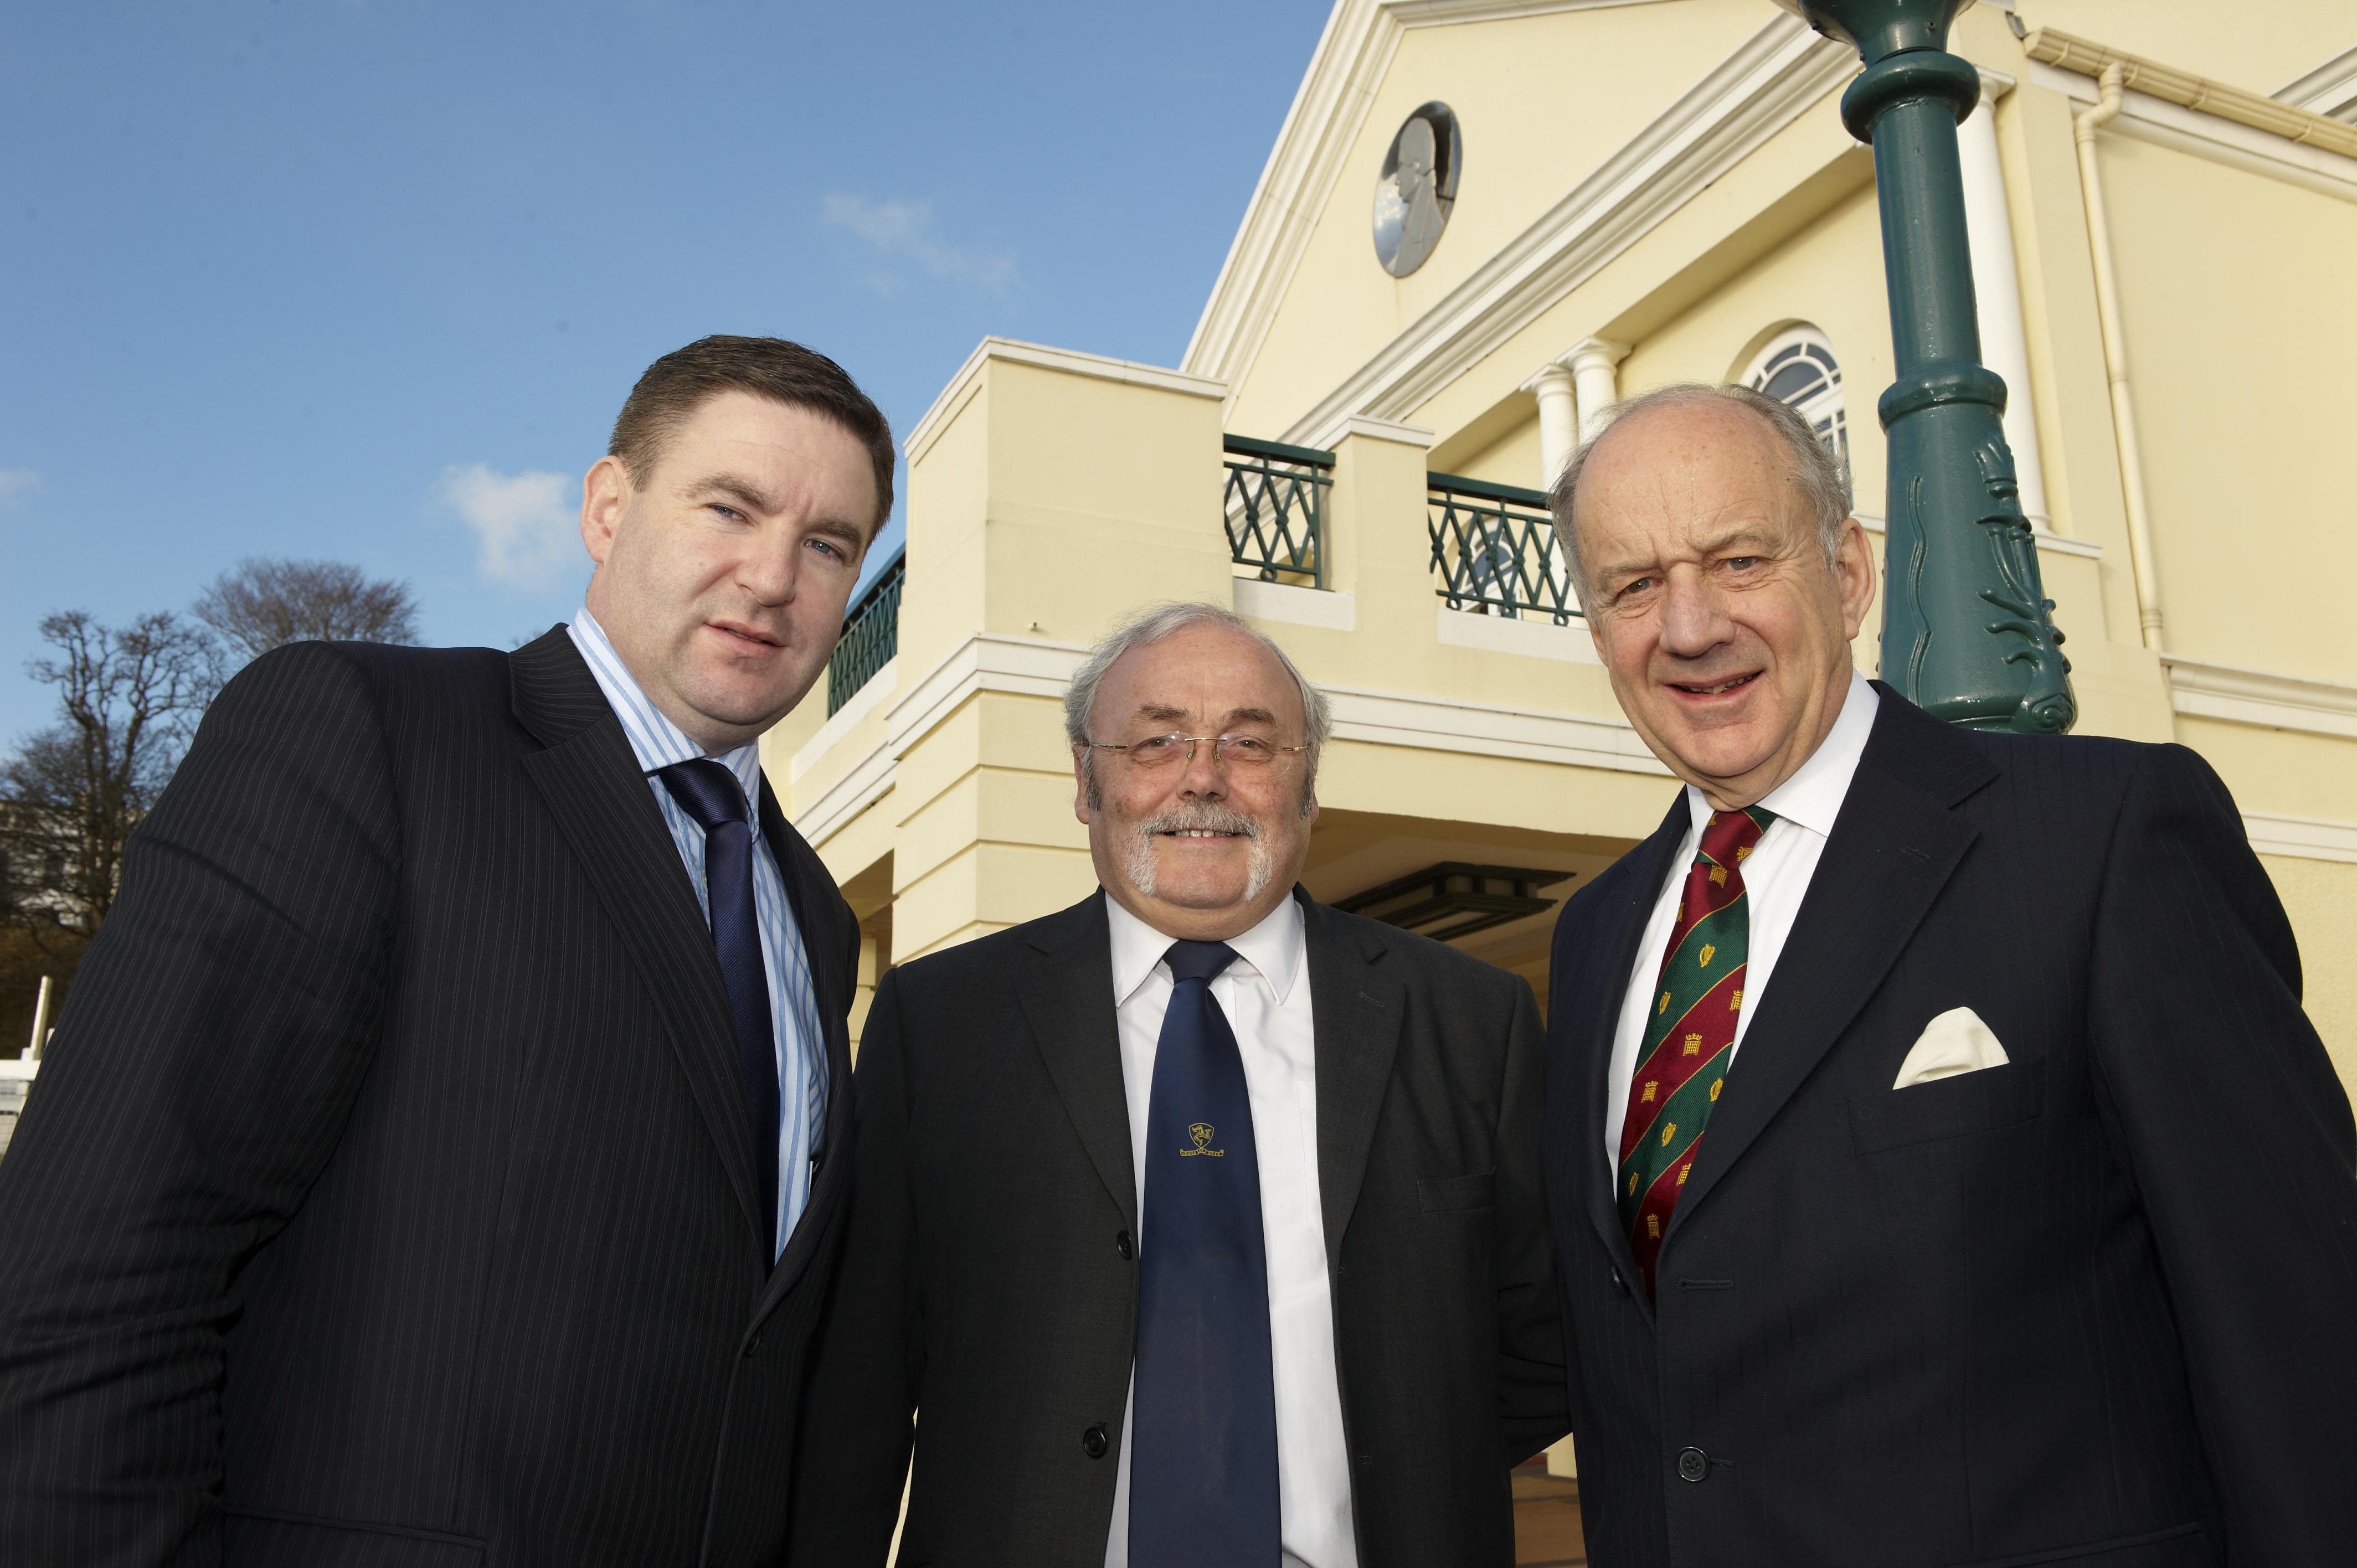 BIPA Co-Chairs, Niall Blaney TD and Lord Cope of Berkeley, with the Chief Minister of the Isle of Man, Mr JA Brown